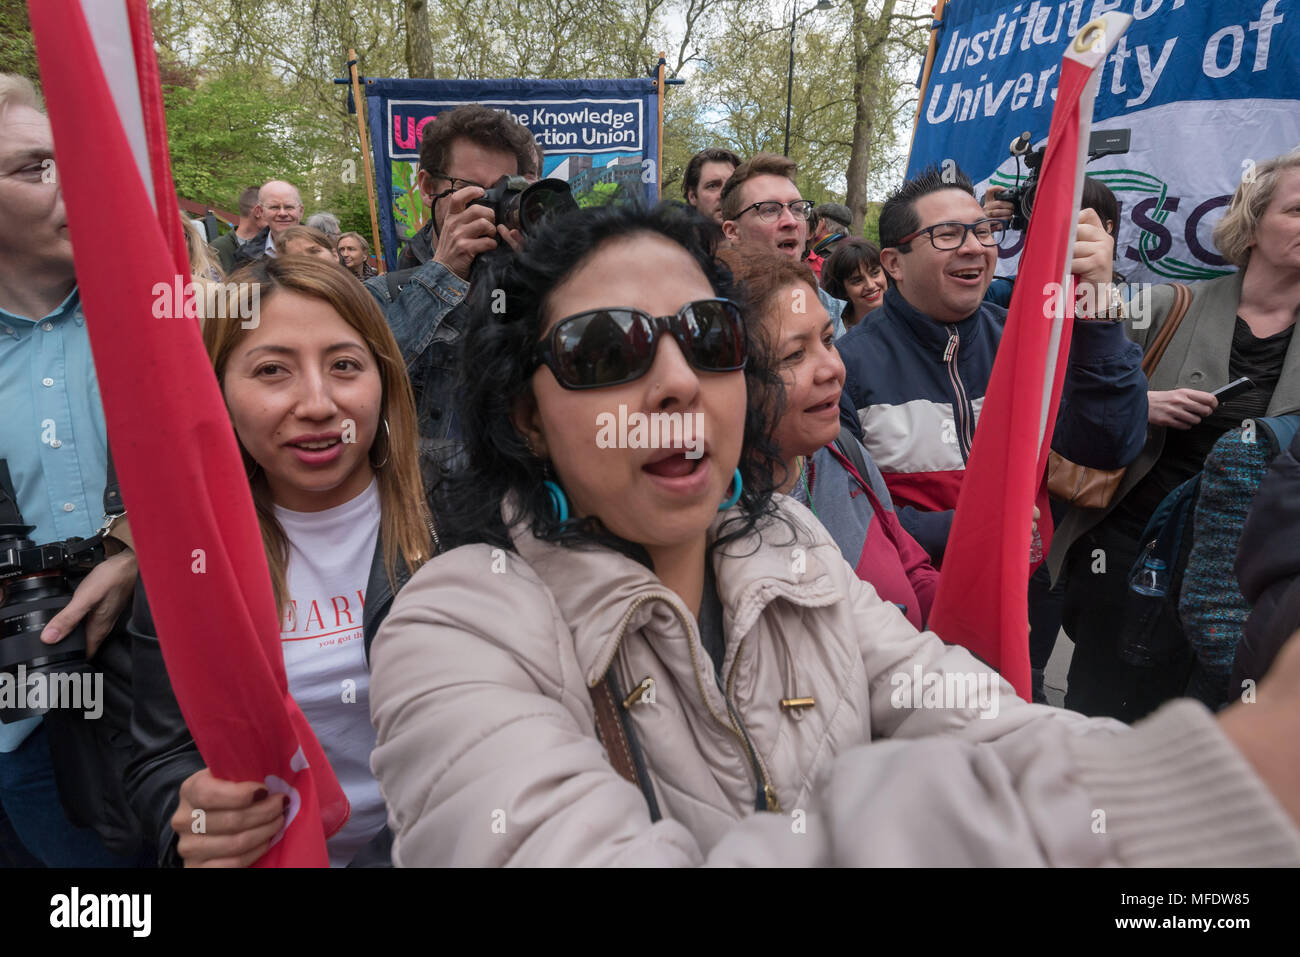 London, UK. 25th April 2018. A noisy rally takes place by workers, students and other trade unionists supporting over 100 cleaners, porters, security officers, receptionists, gardeners, post room staff and audiovisual staff in the Independent Workers Union of Great Britain - IWGB at the end of the first day of a two day strike at the University of London central administration. The workers, employed by various outsourcing companies are demanding to be directly employed by the University, and receive the same conditions and benefits as directly employed colleagues; outsourced workers receive wo - Stock Image